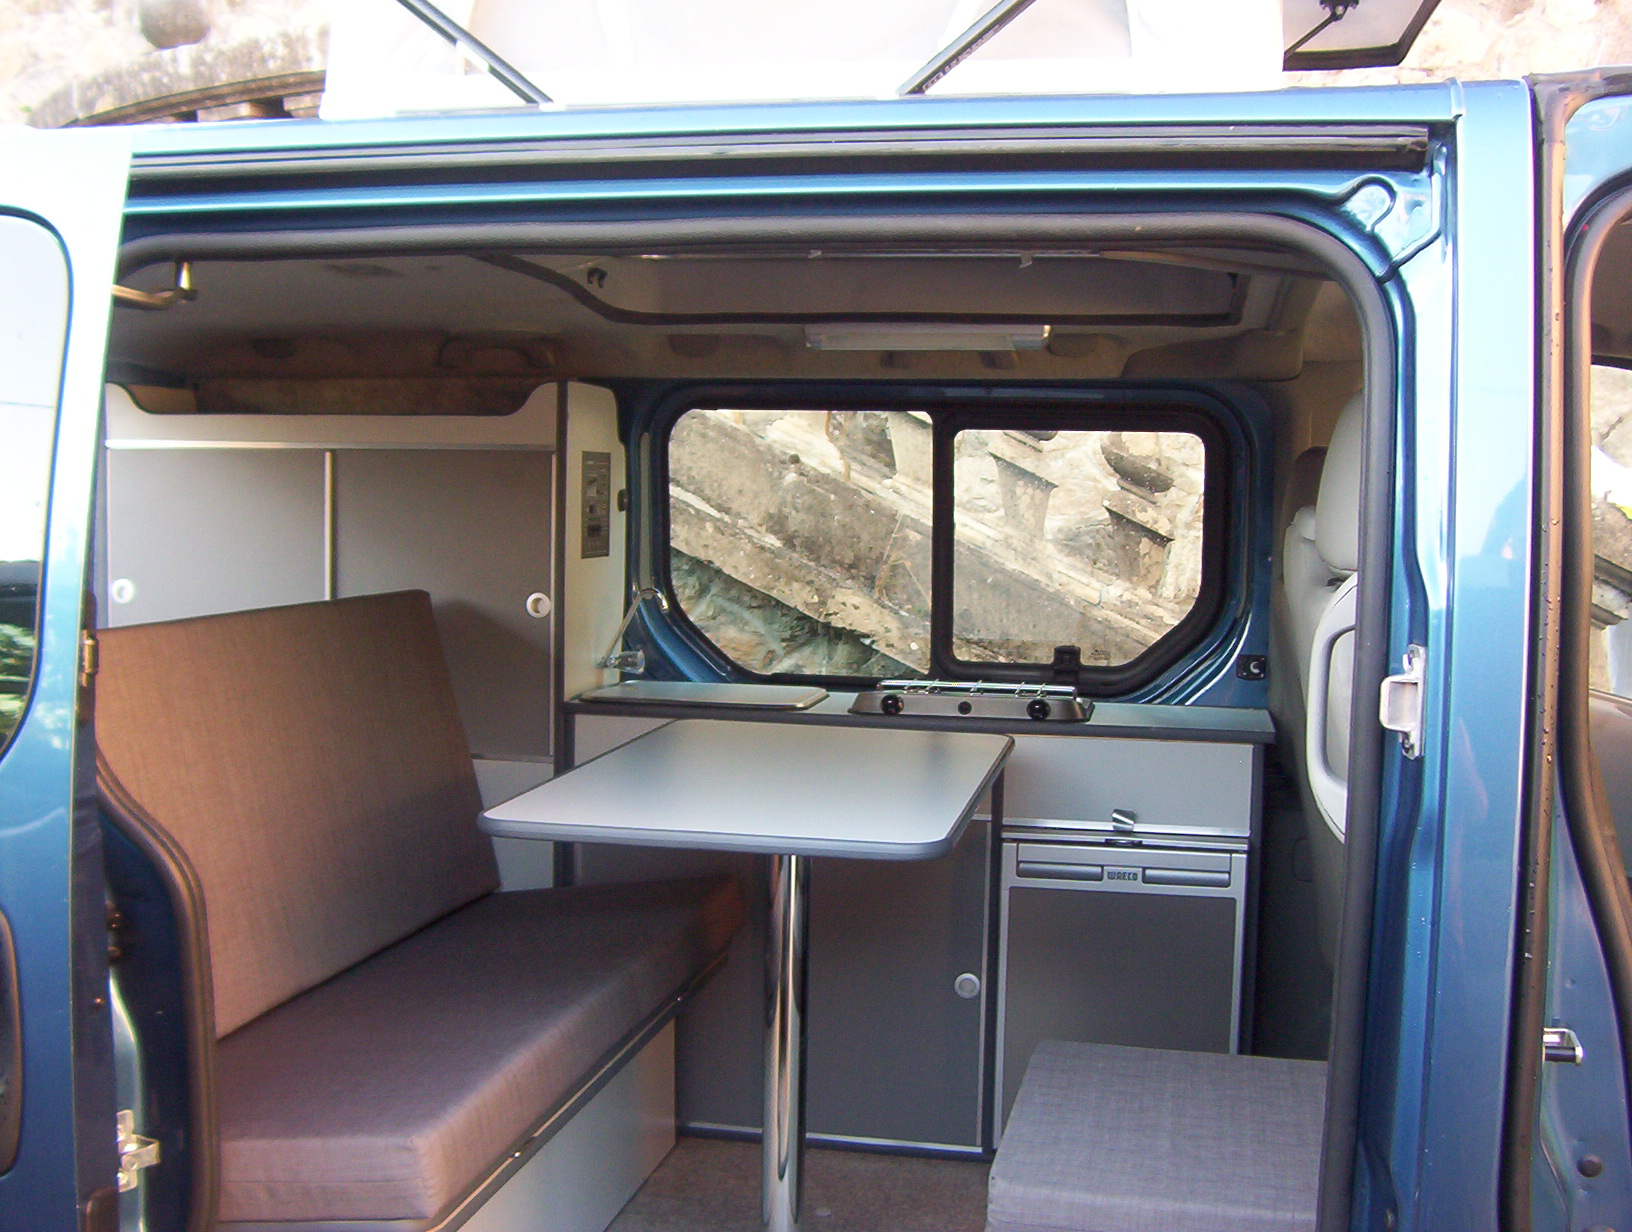 Amenagement trafic l2h1 camping car for Amenagement interieur camping car